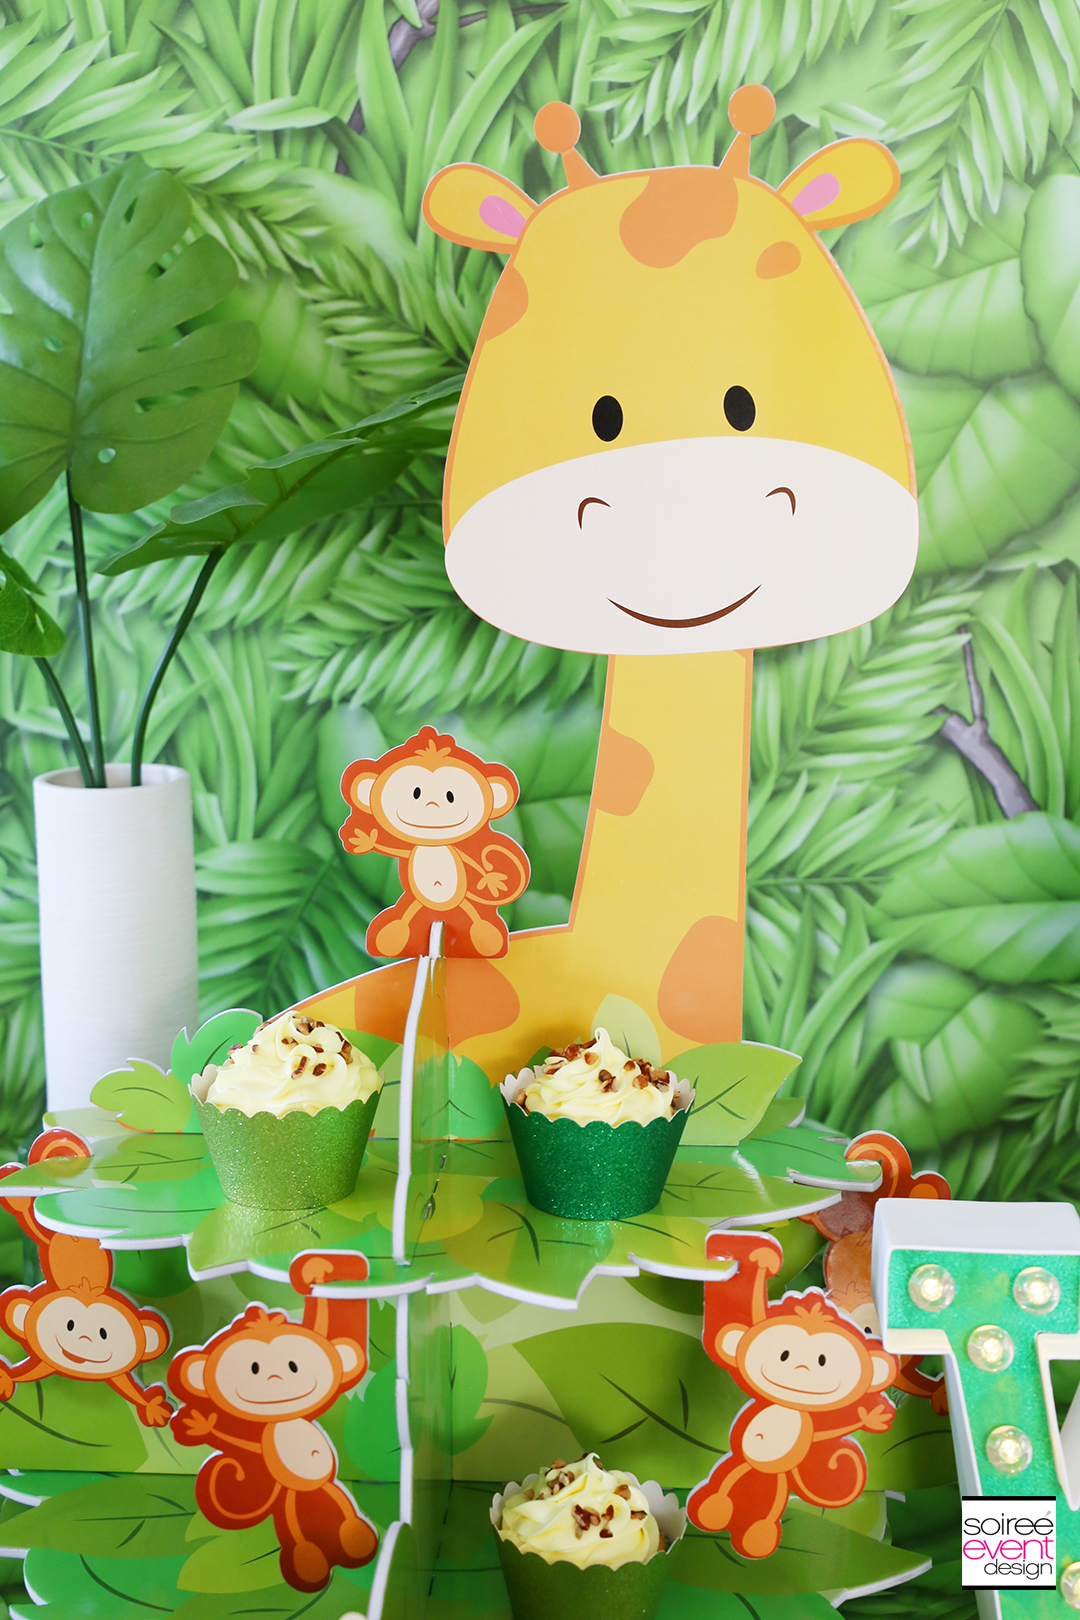 Safari First Birthday Party Ideas - Banana Crunch Cupcakes